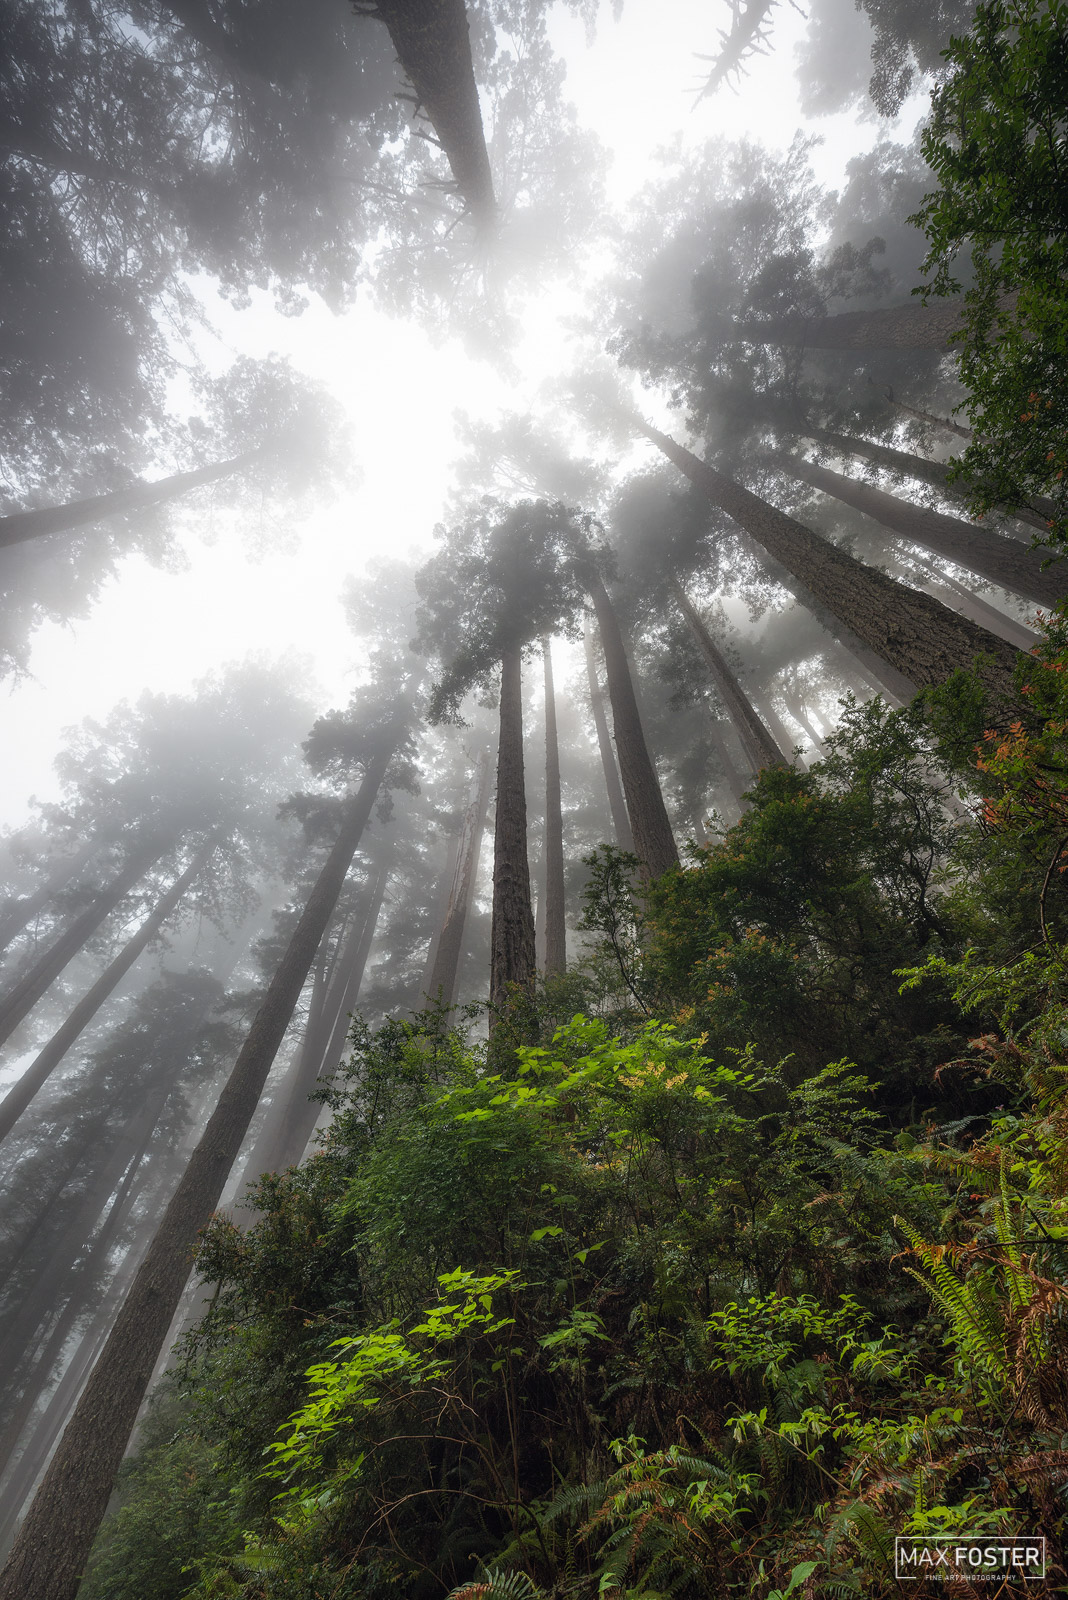 Fine Art Limited Edition of 50 The Redwood National and State Parks (RNSP) are a complex of several state and national parks...